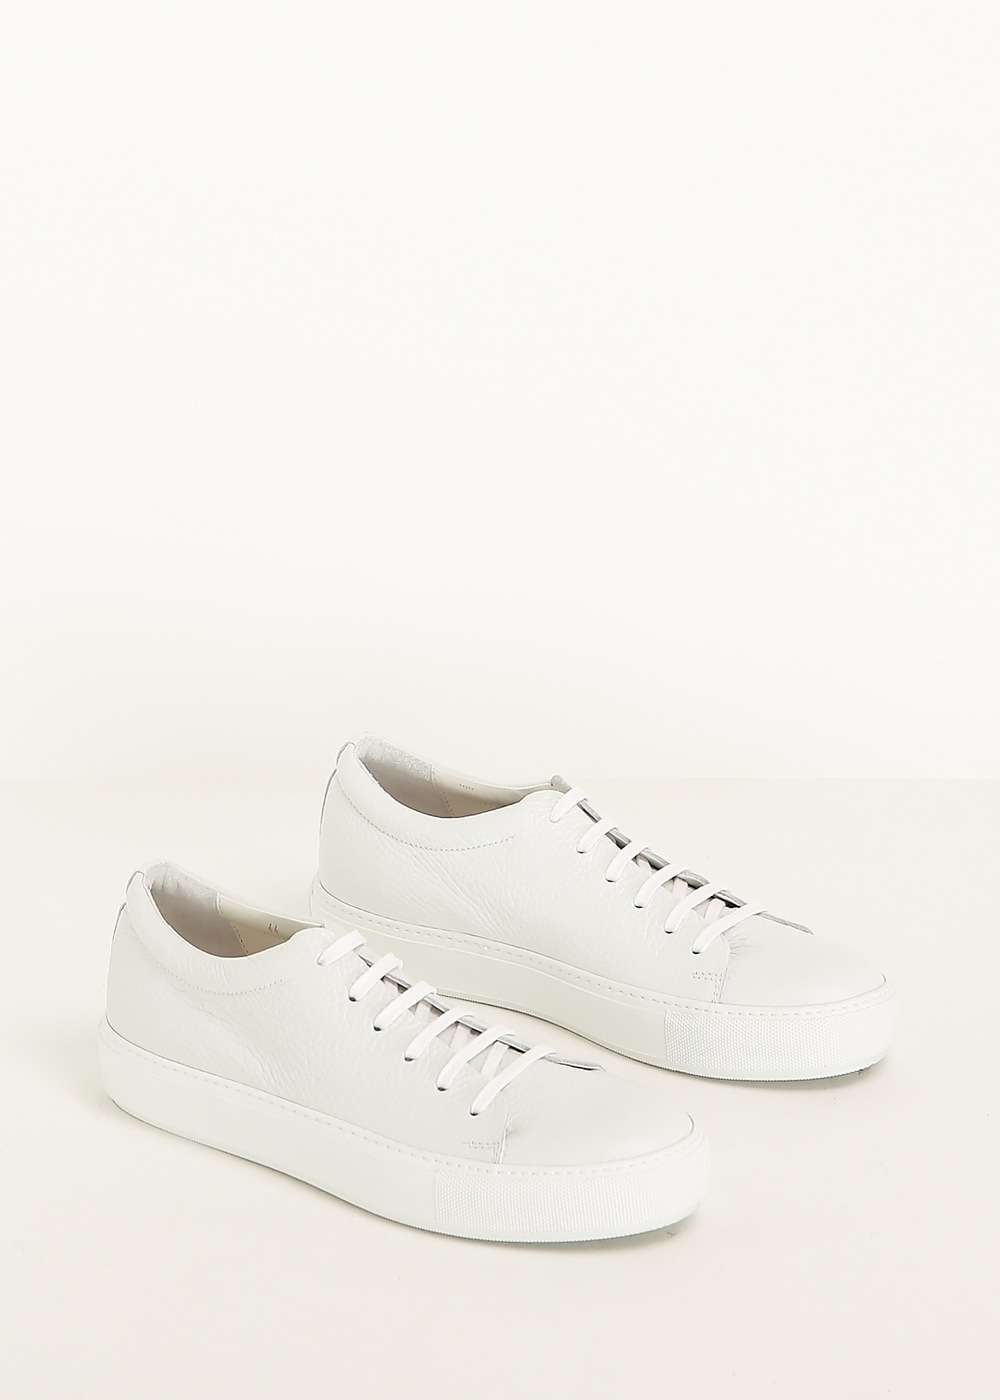 Acne Studios, Adrian, White, Men's